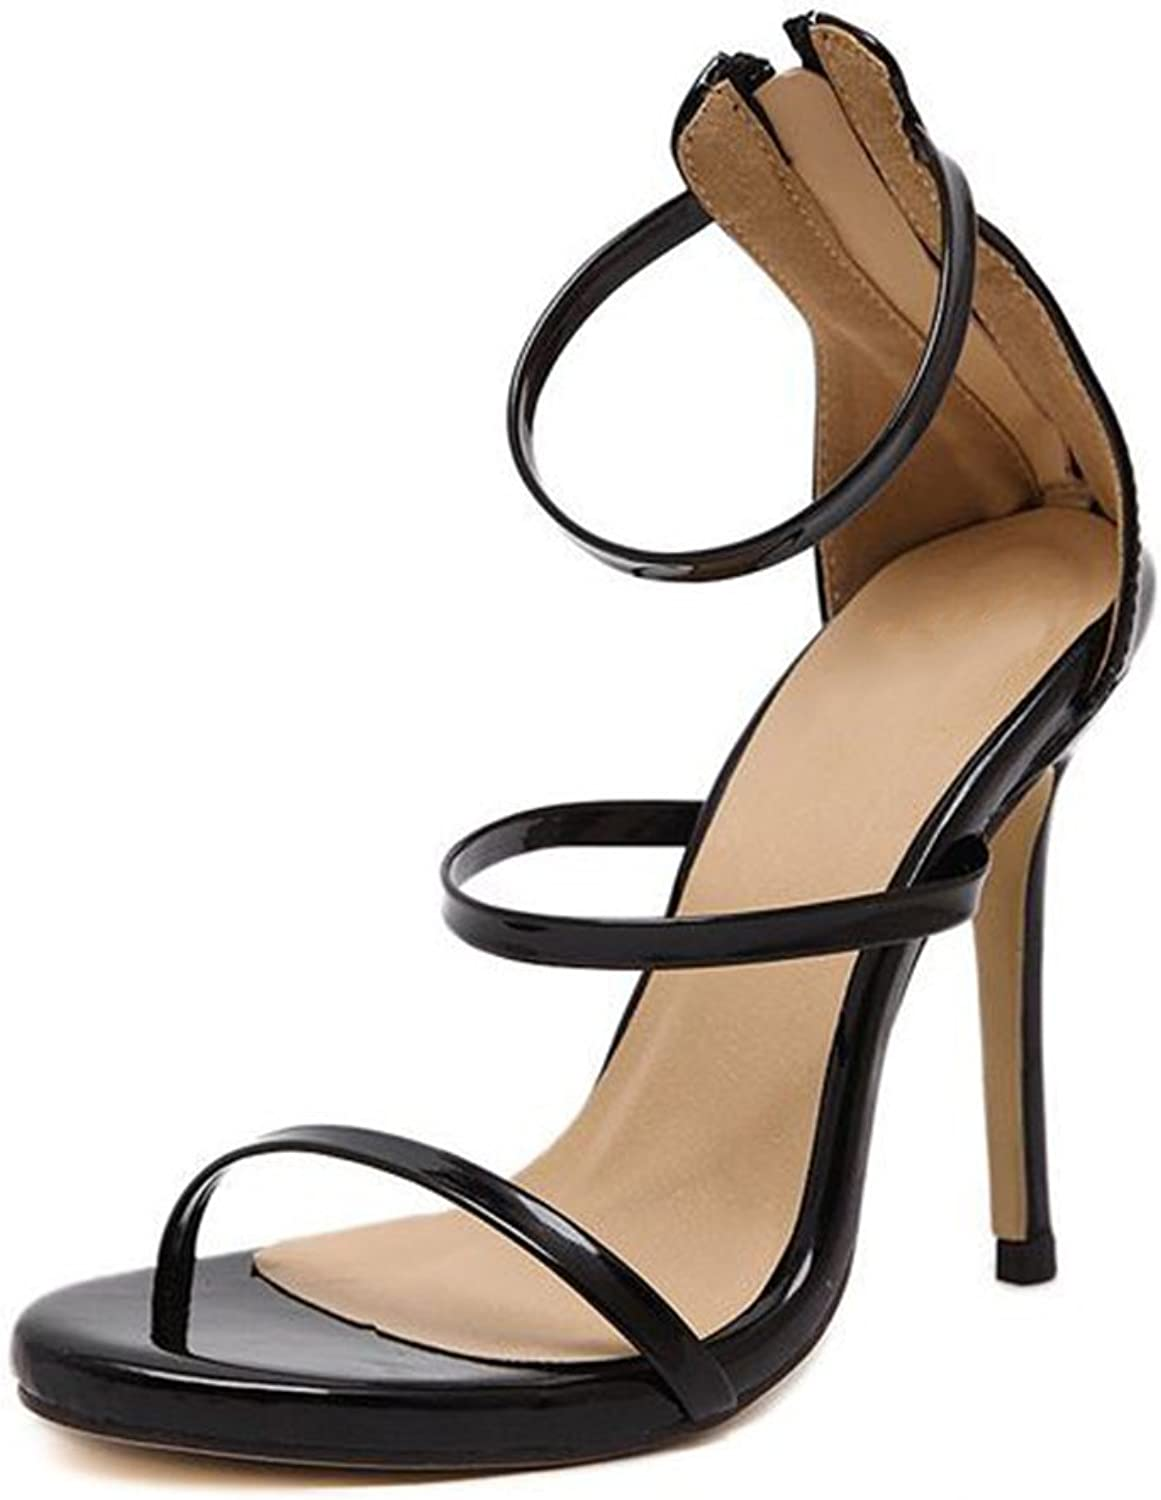 SUNNY Store Women's Strappy Stilleto Heeled Sandal Party shoes